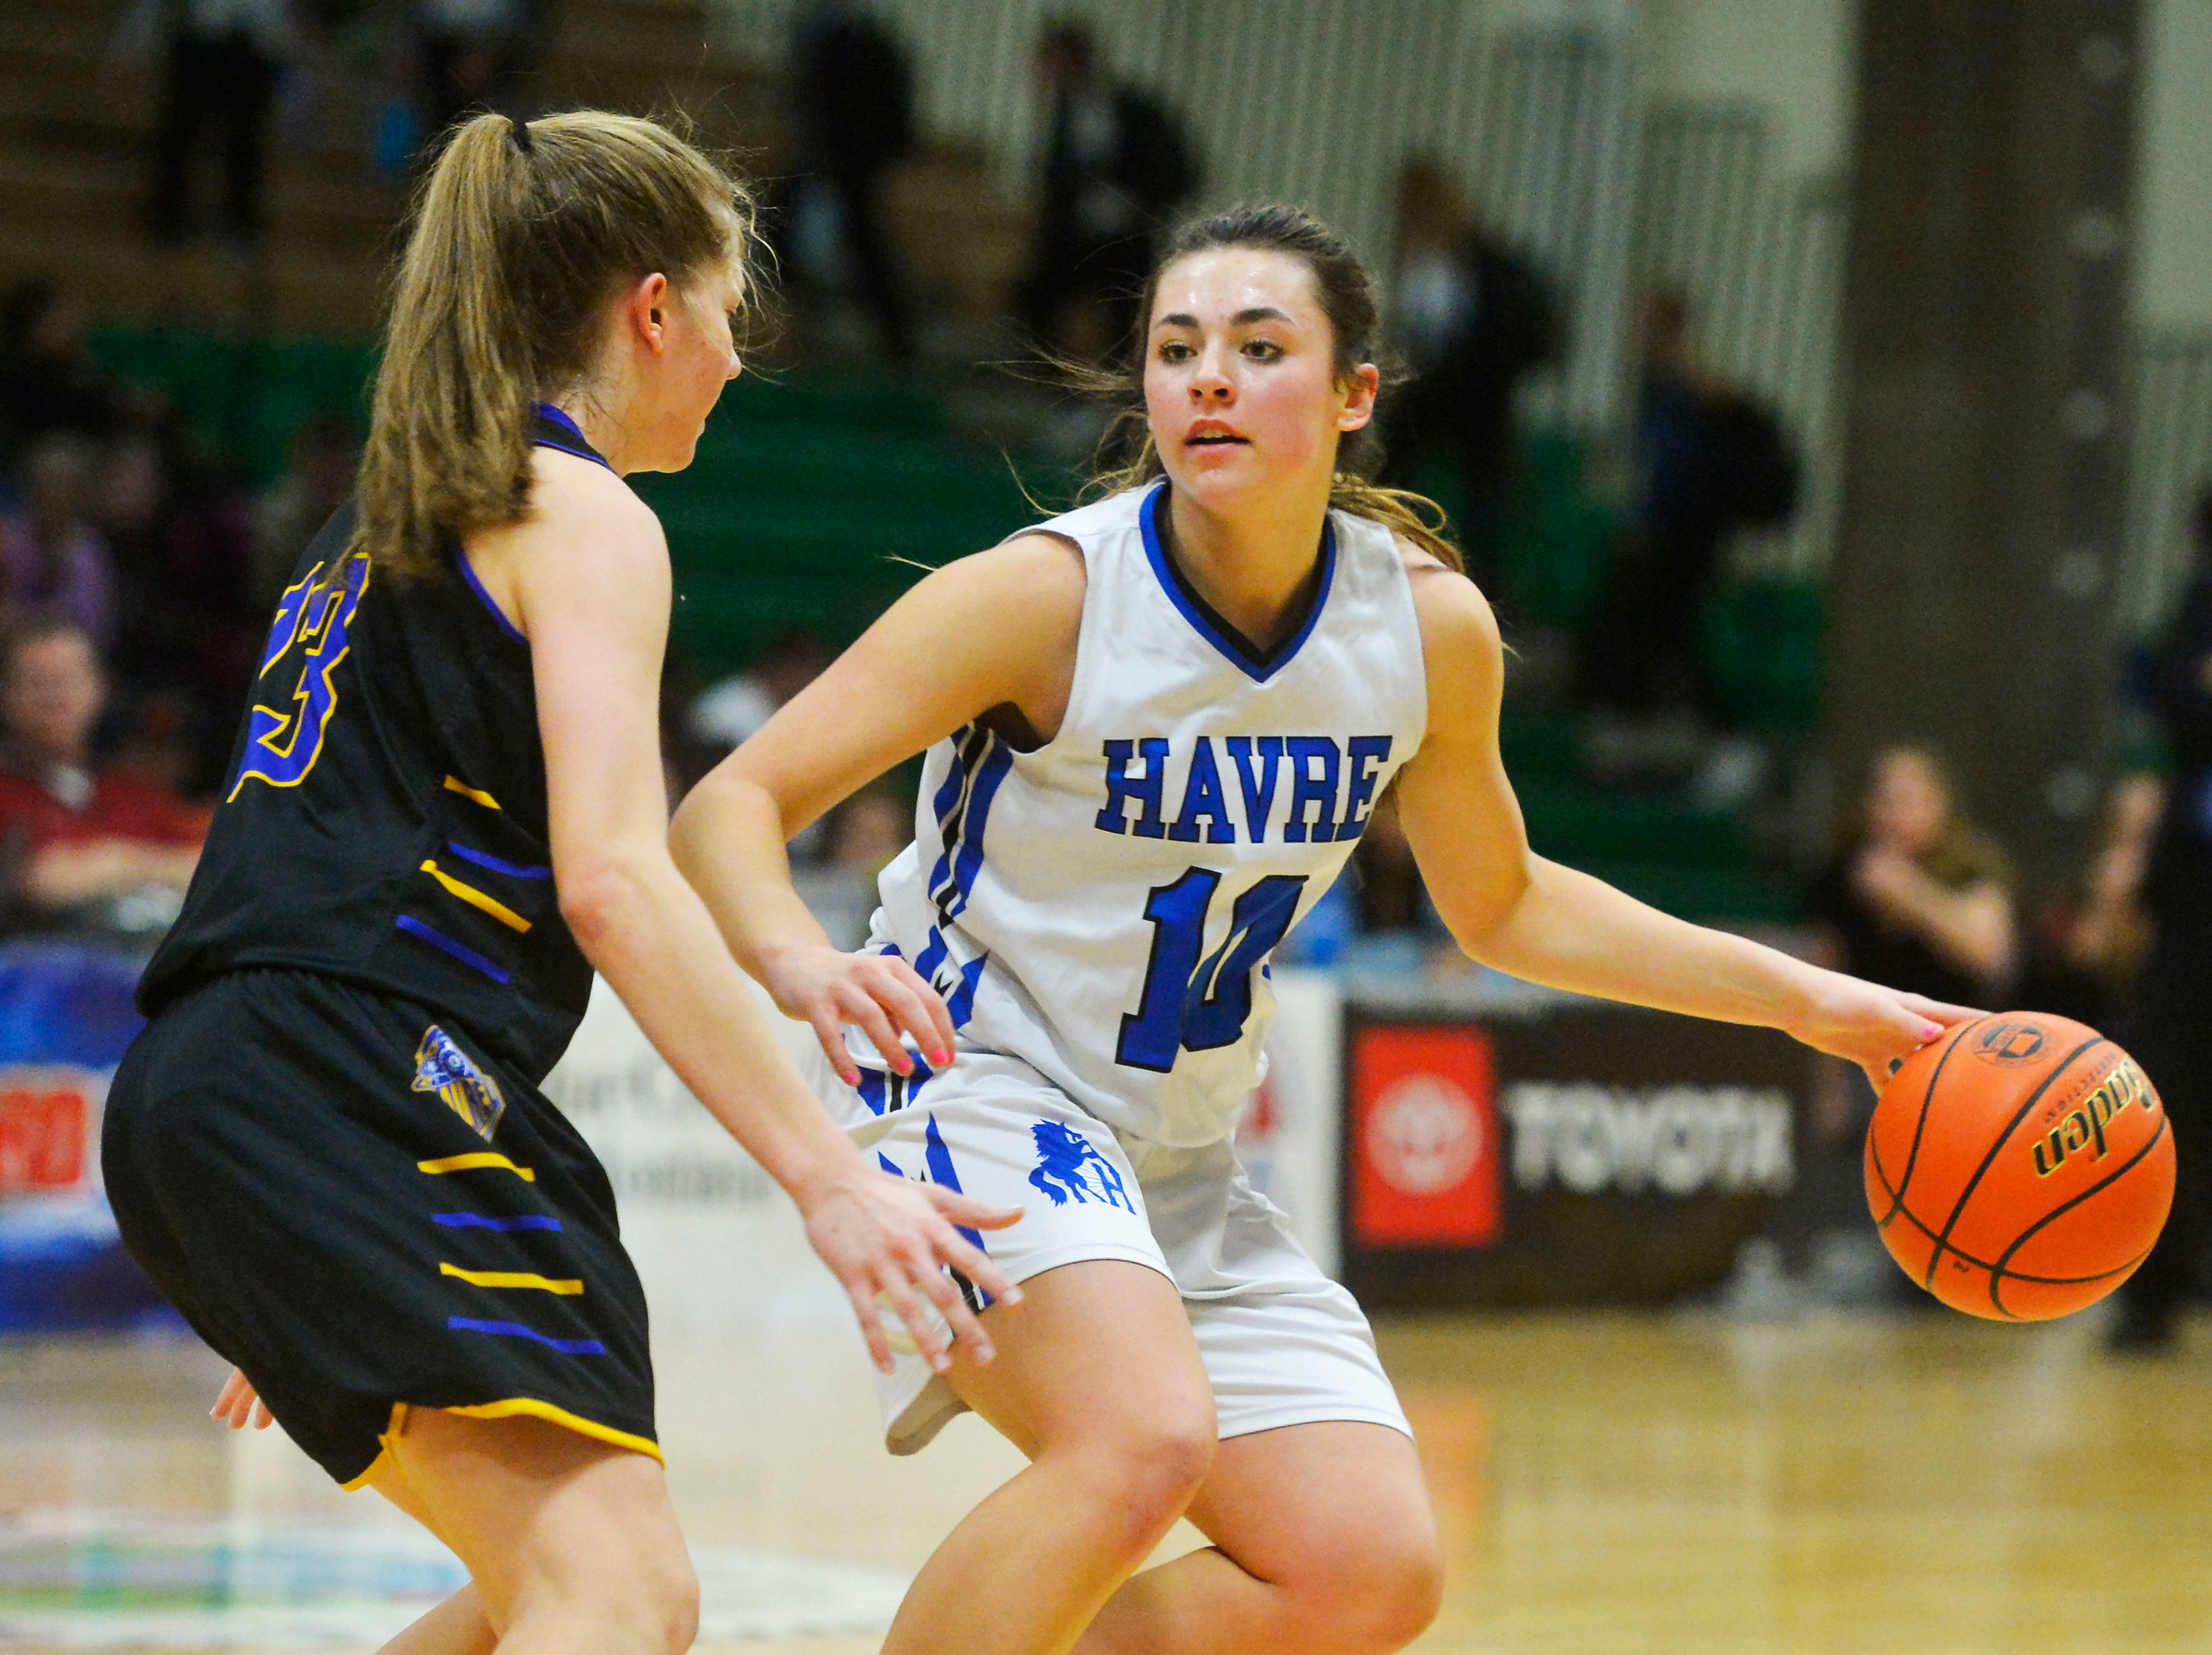 Havre's Kyndall Keller looks for an opening in the defense as Laurel's Gracey Willis defends during the semifinal round of the State Class A Basketball Tournament in the Four Seasons Arena, Friday.